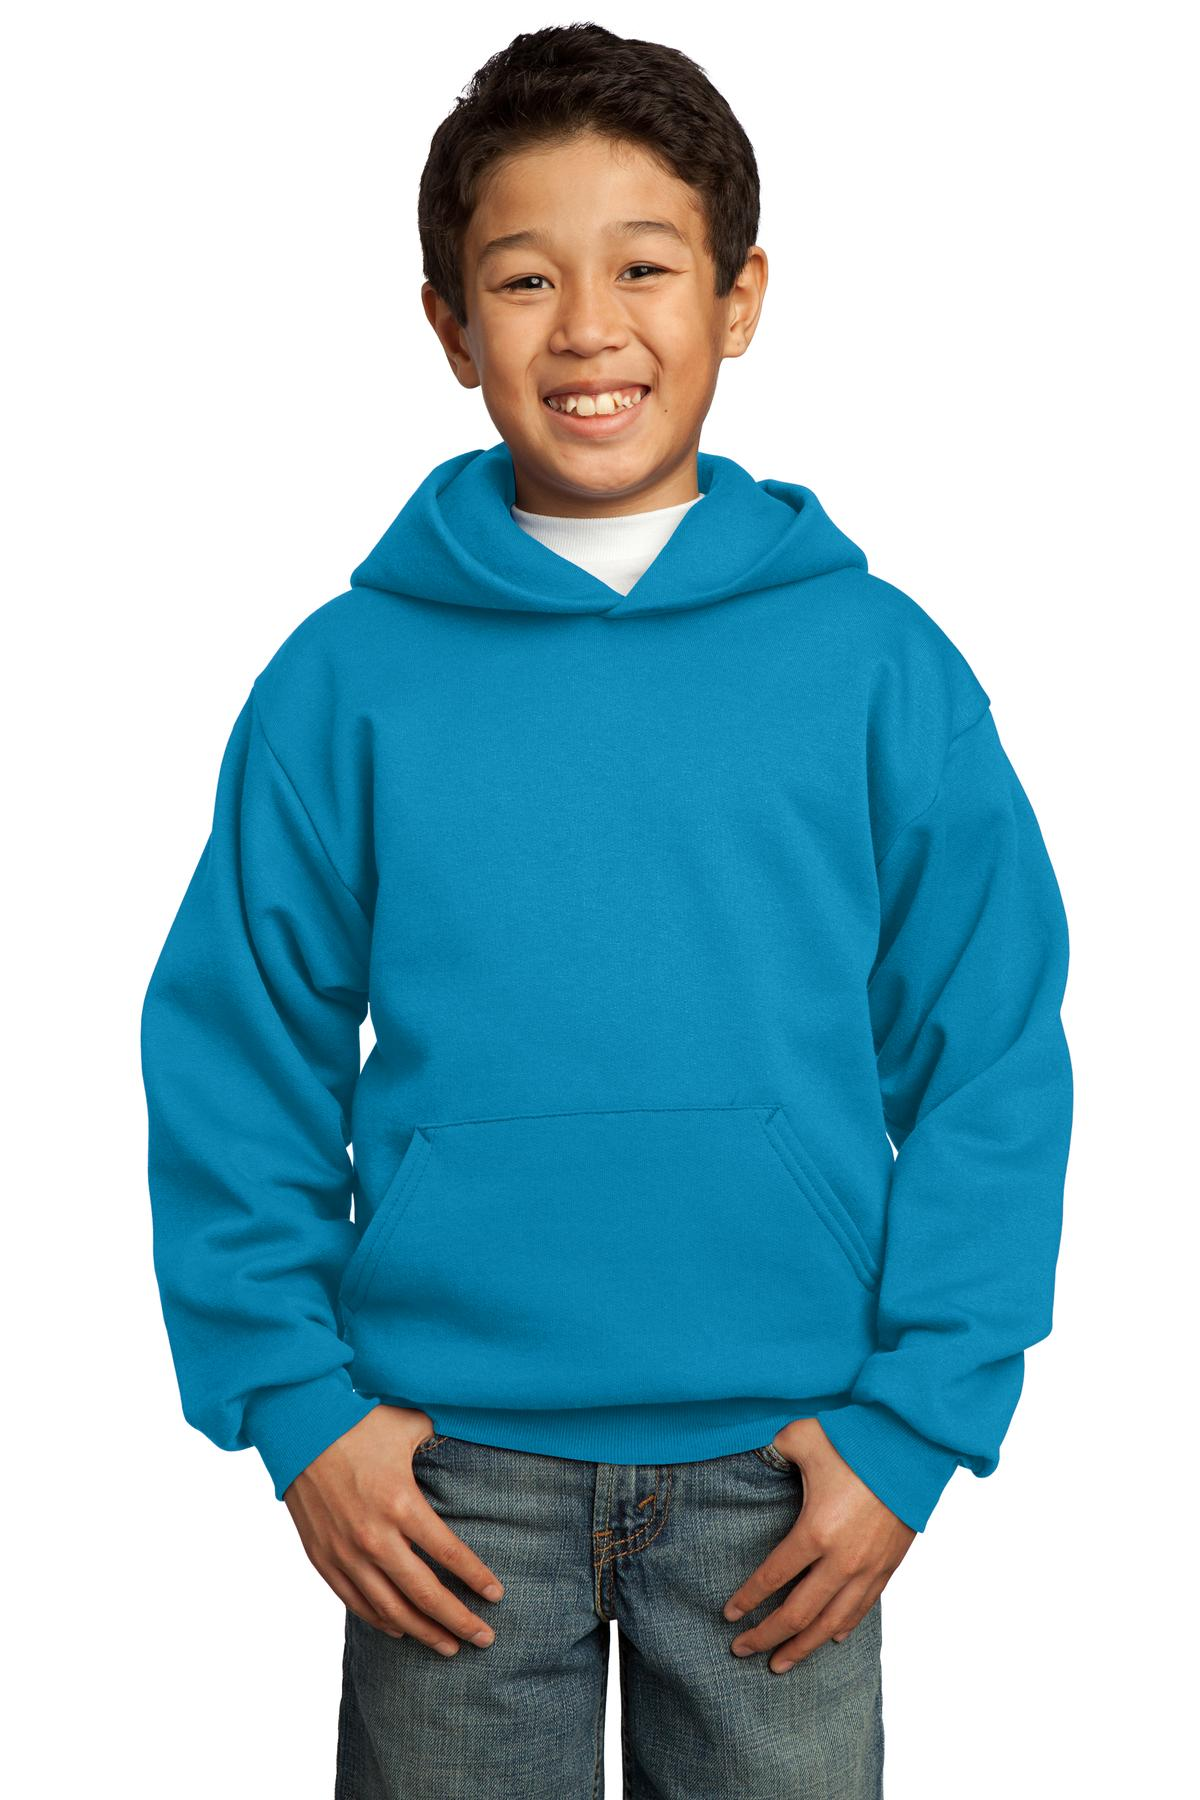 Port & Company ®  - Youth Core Fleece Pullover Hooded Sweatshirt.  PC90YH - Neon Blue